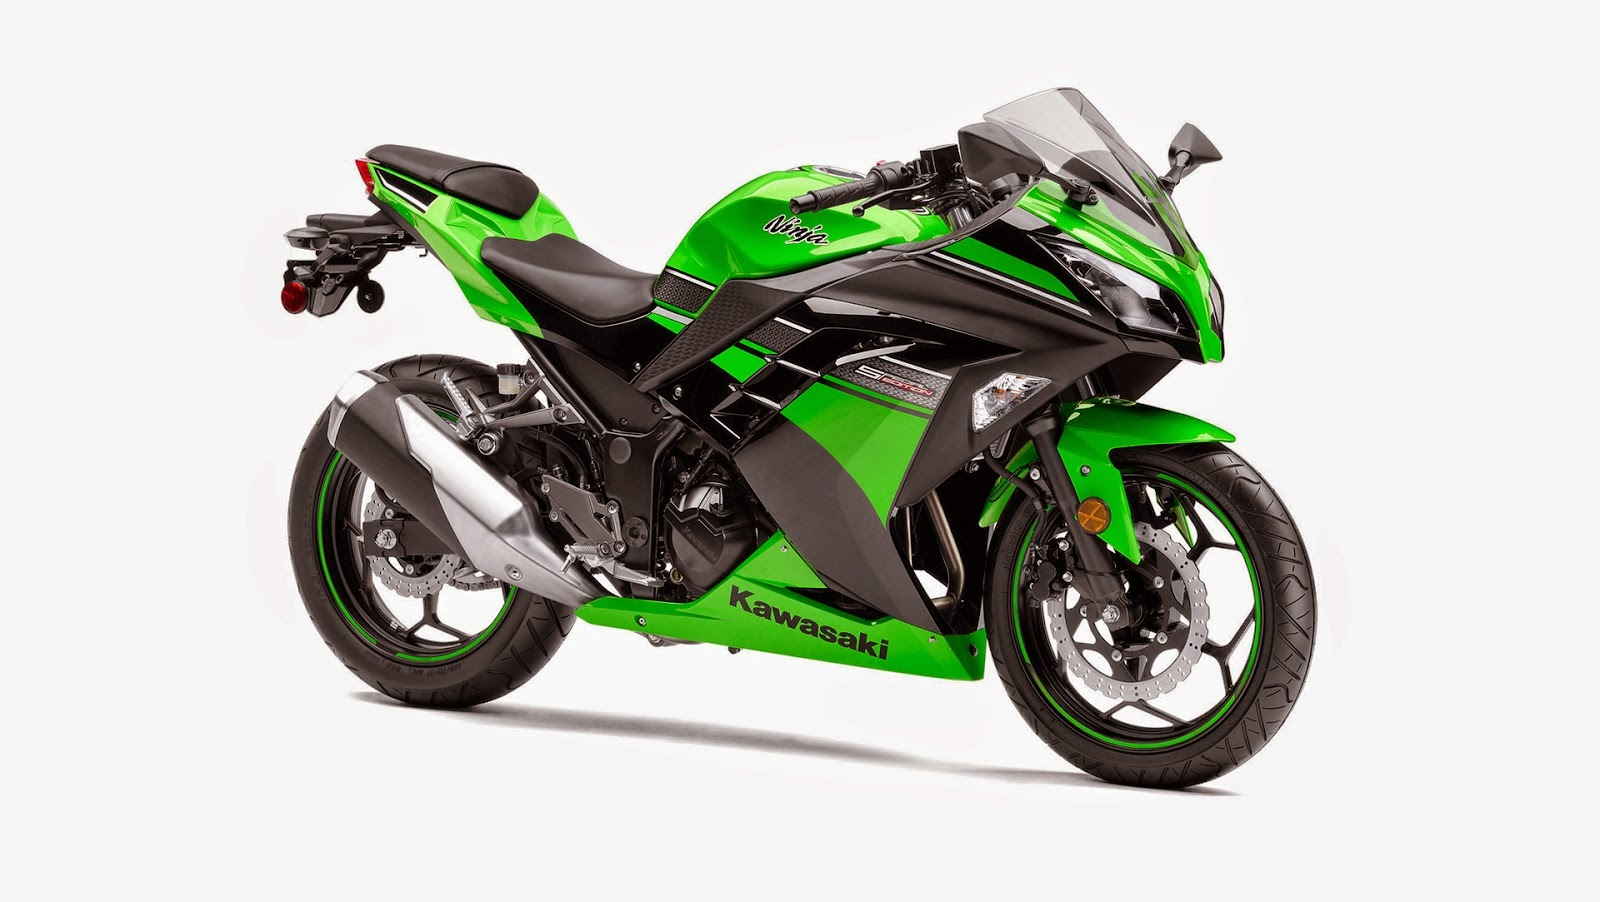 Kawasaki ninja 250r four stroke twin parallel cylinders double overhead cam liquid cooled efi and has 6 speed of transmission